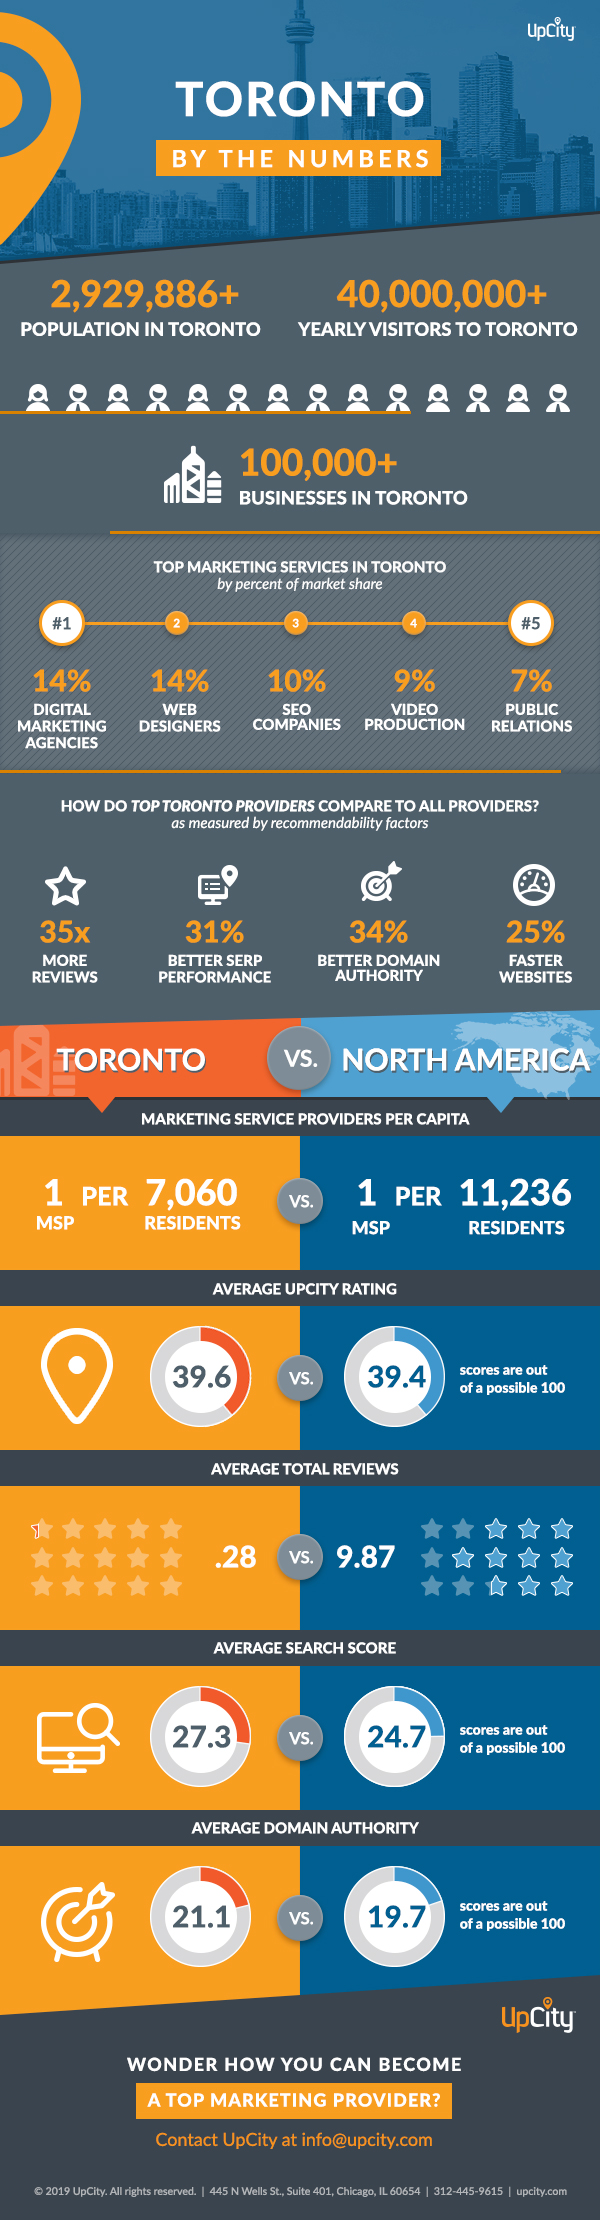 UpCity Toronto by the Numbers-Get Insights into Top Performing Marketers in Toronto